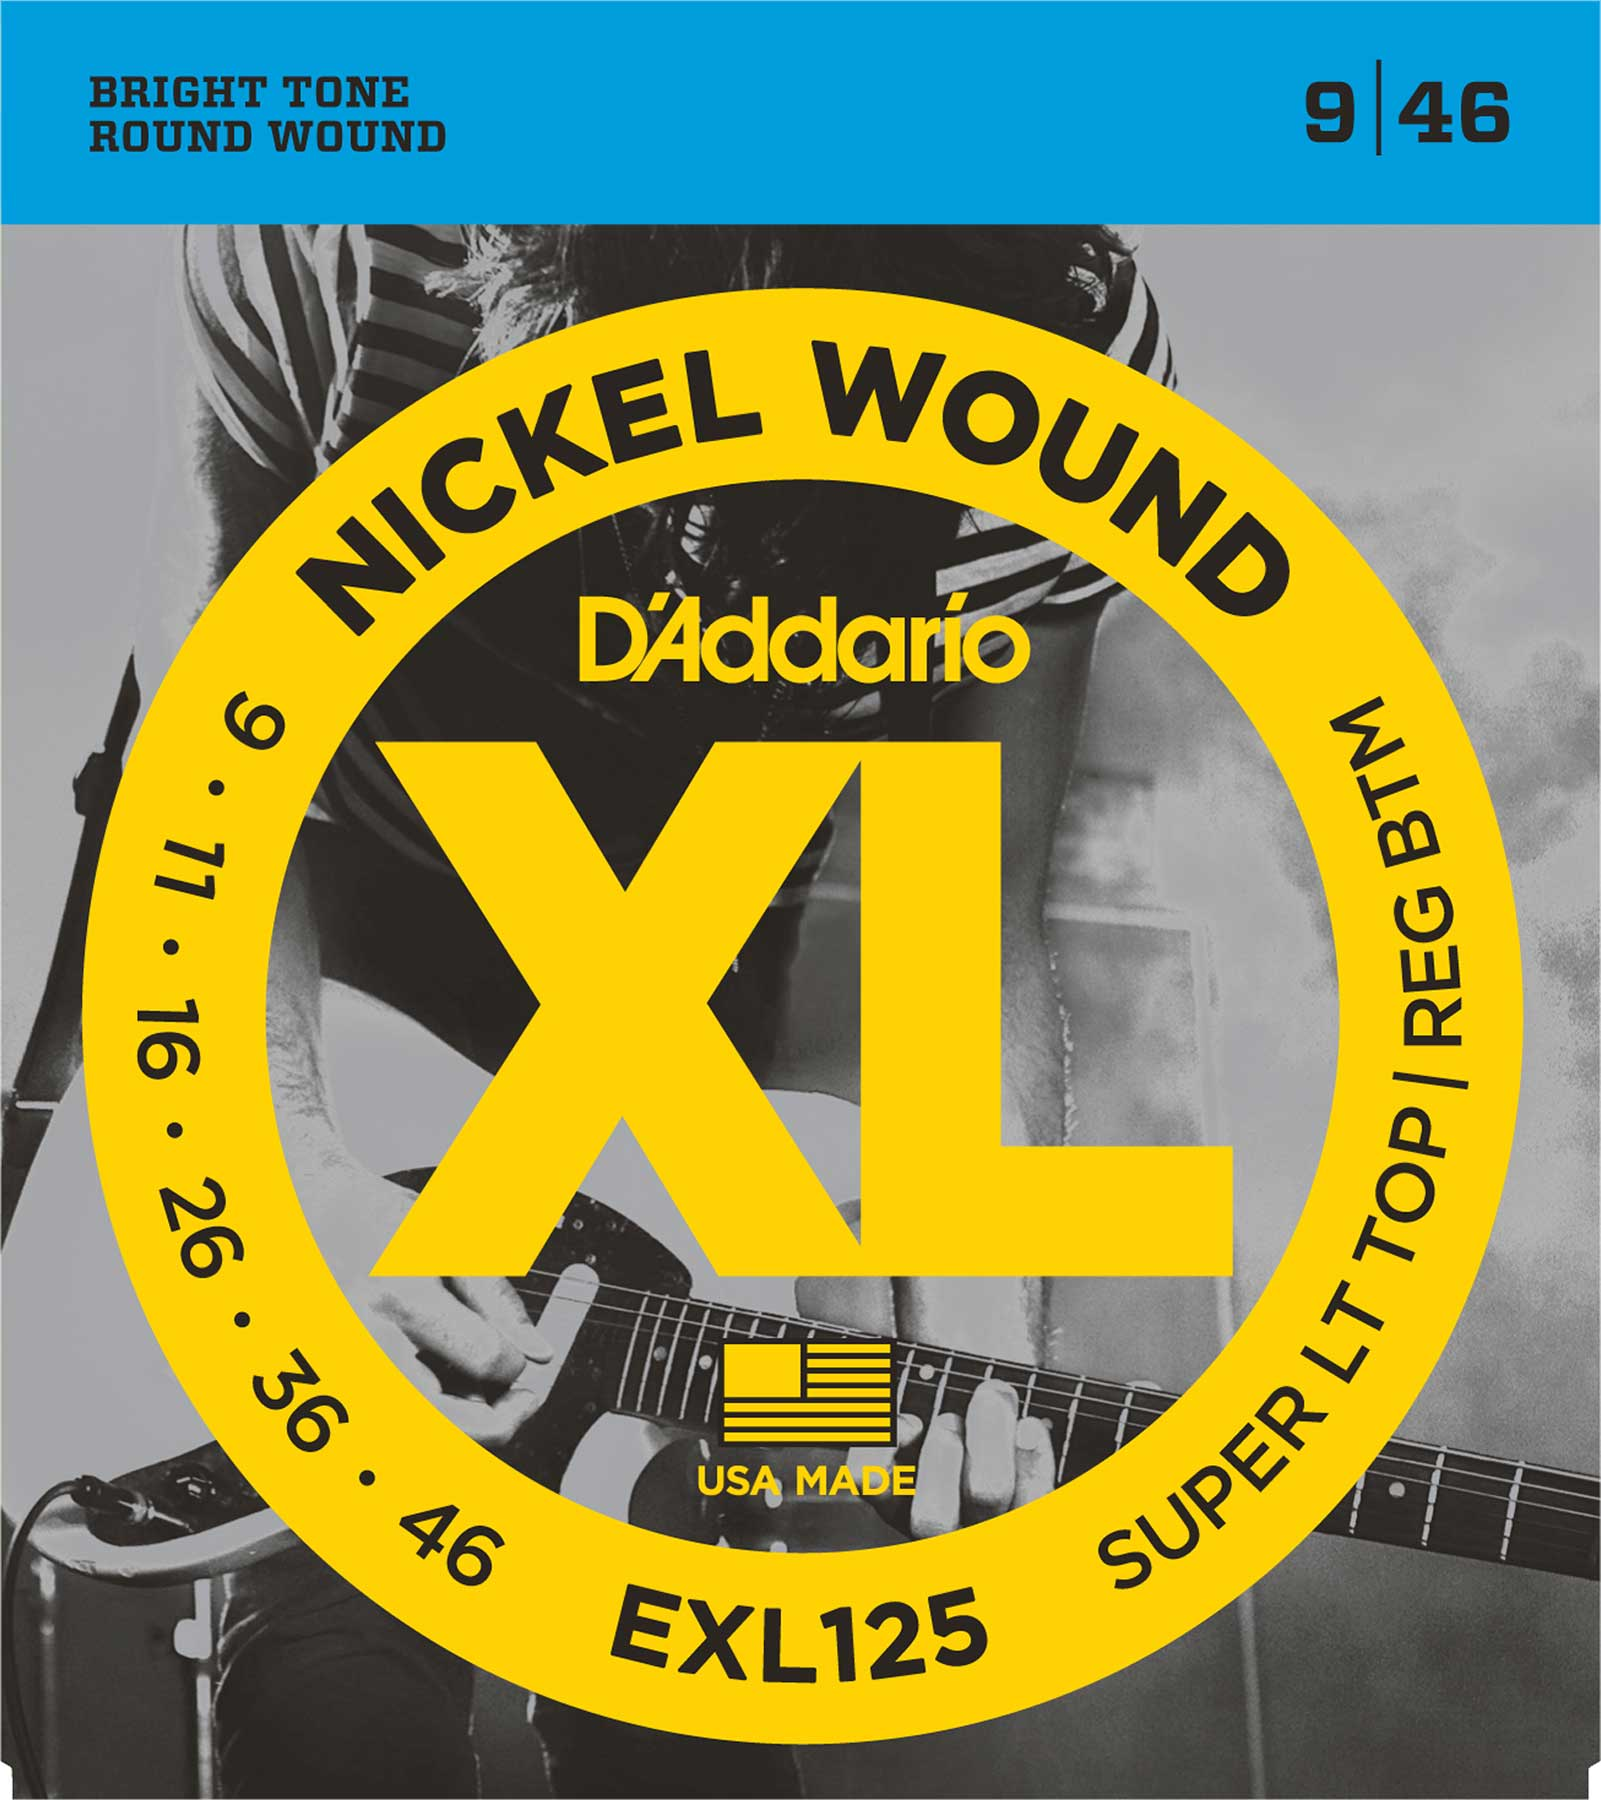 D'ADDARIO NICKEL WOUND ELECTRIC GUITAR STRINGS 9-46